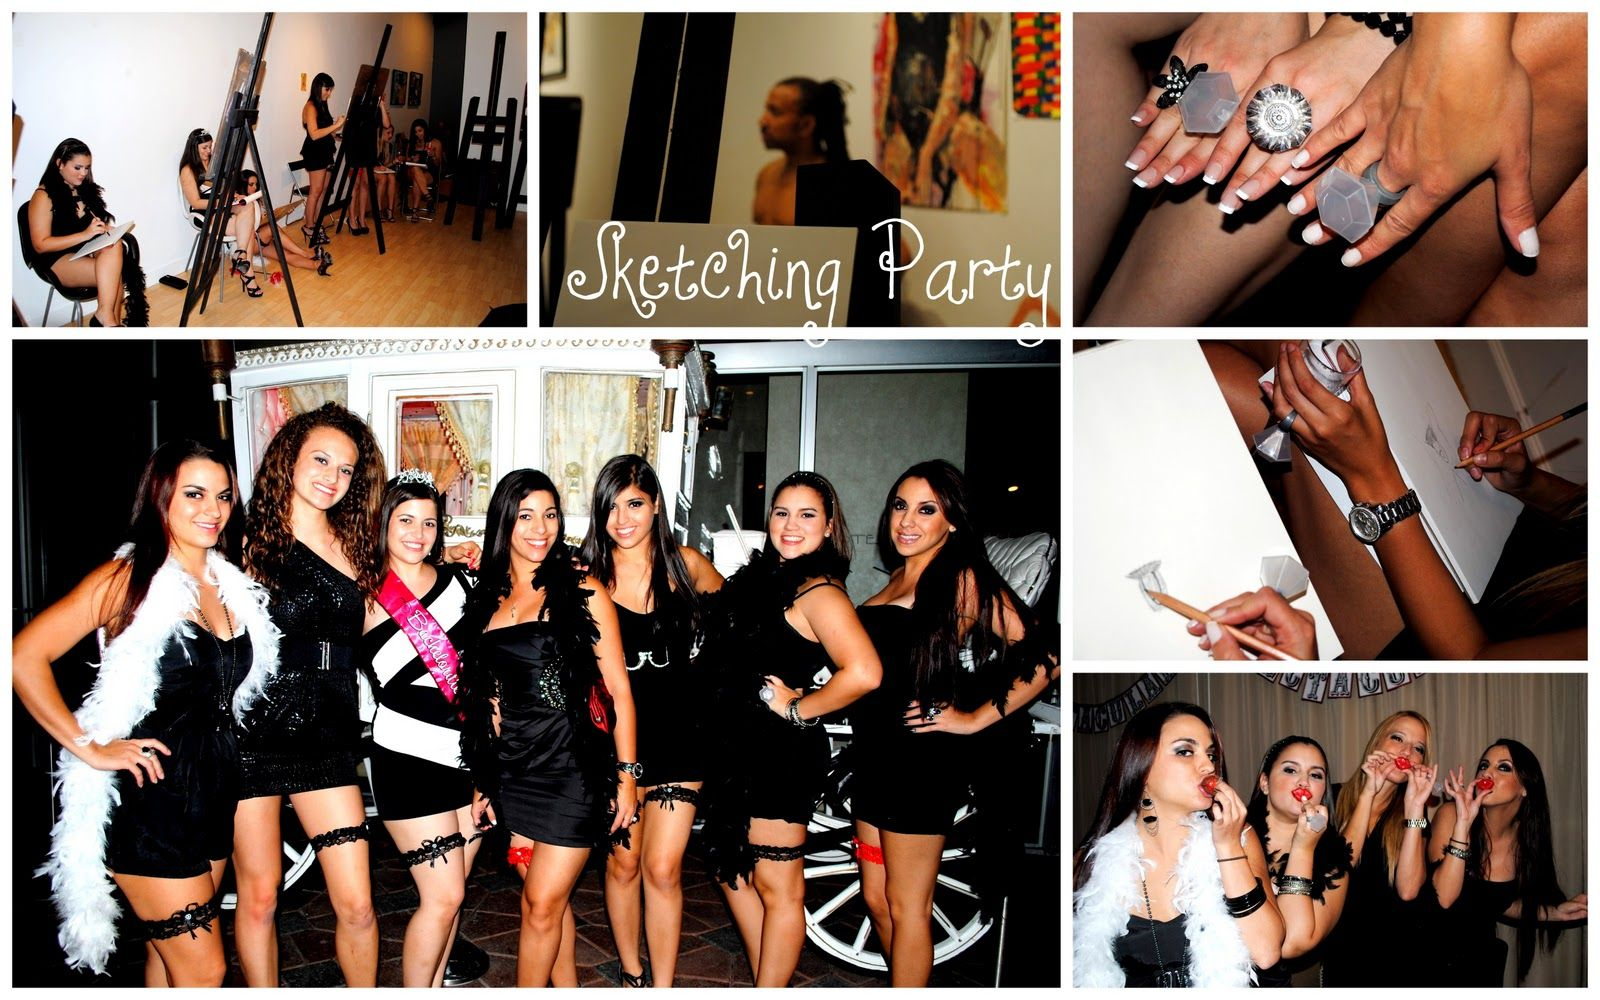 Moulin rouge party moulin rouge party pinterest - My Sister Moulin Rouge Themed Bachelorette Party Was So Much Fun To Plan Although We Didn Necessarily Stick To The Theme The Whole Nig